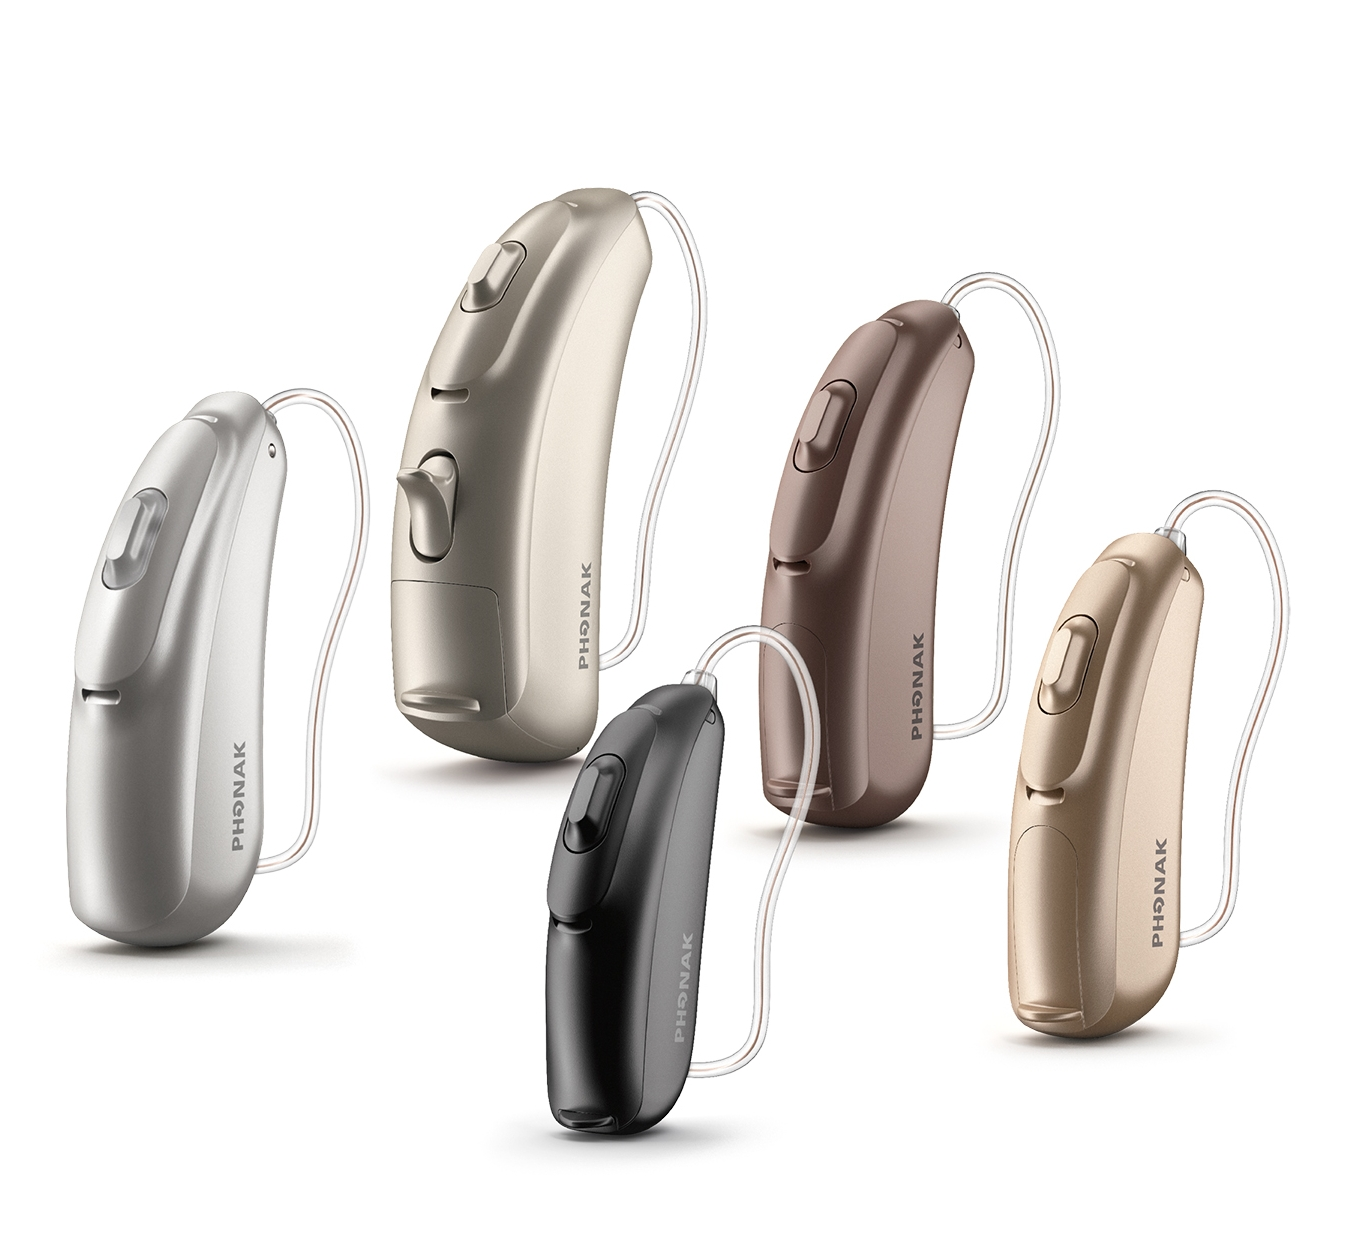 Phonak Hearing Aid.jpeg